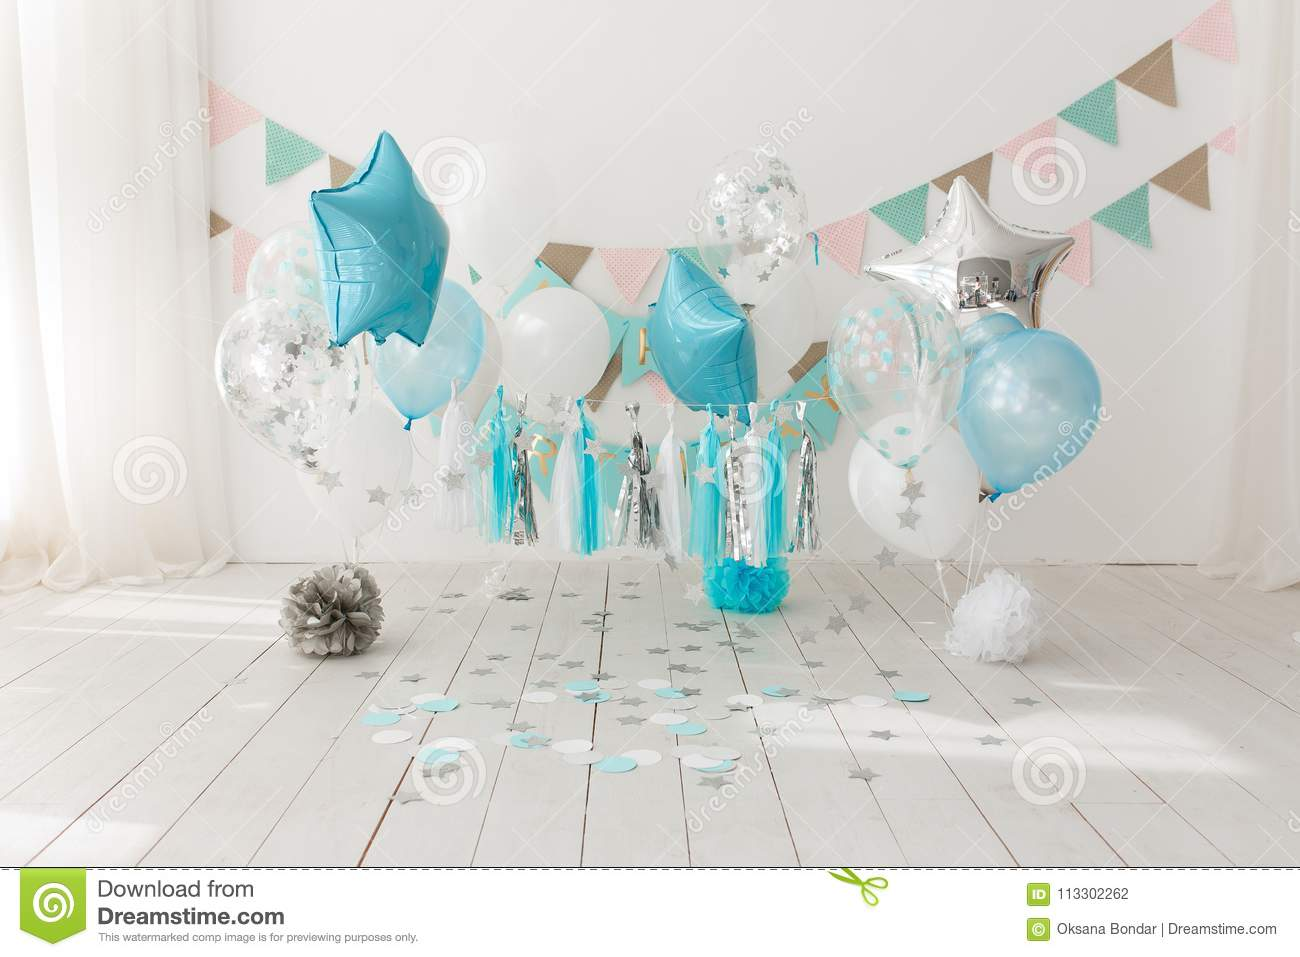 Festive background decoration for birthday celebration with gourmet cake and blue balloons in studio, cake smash first